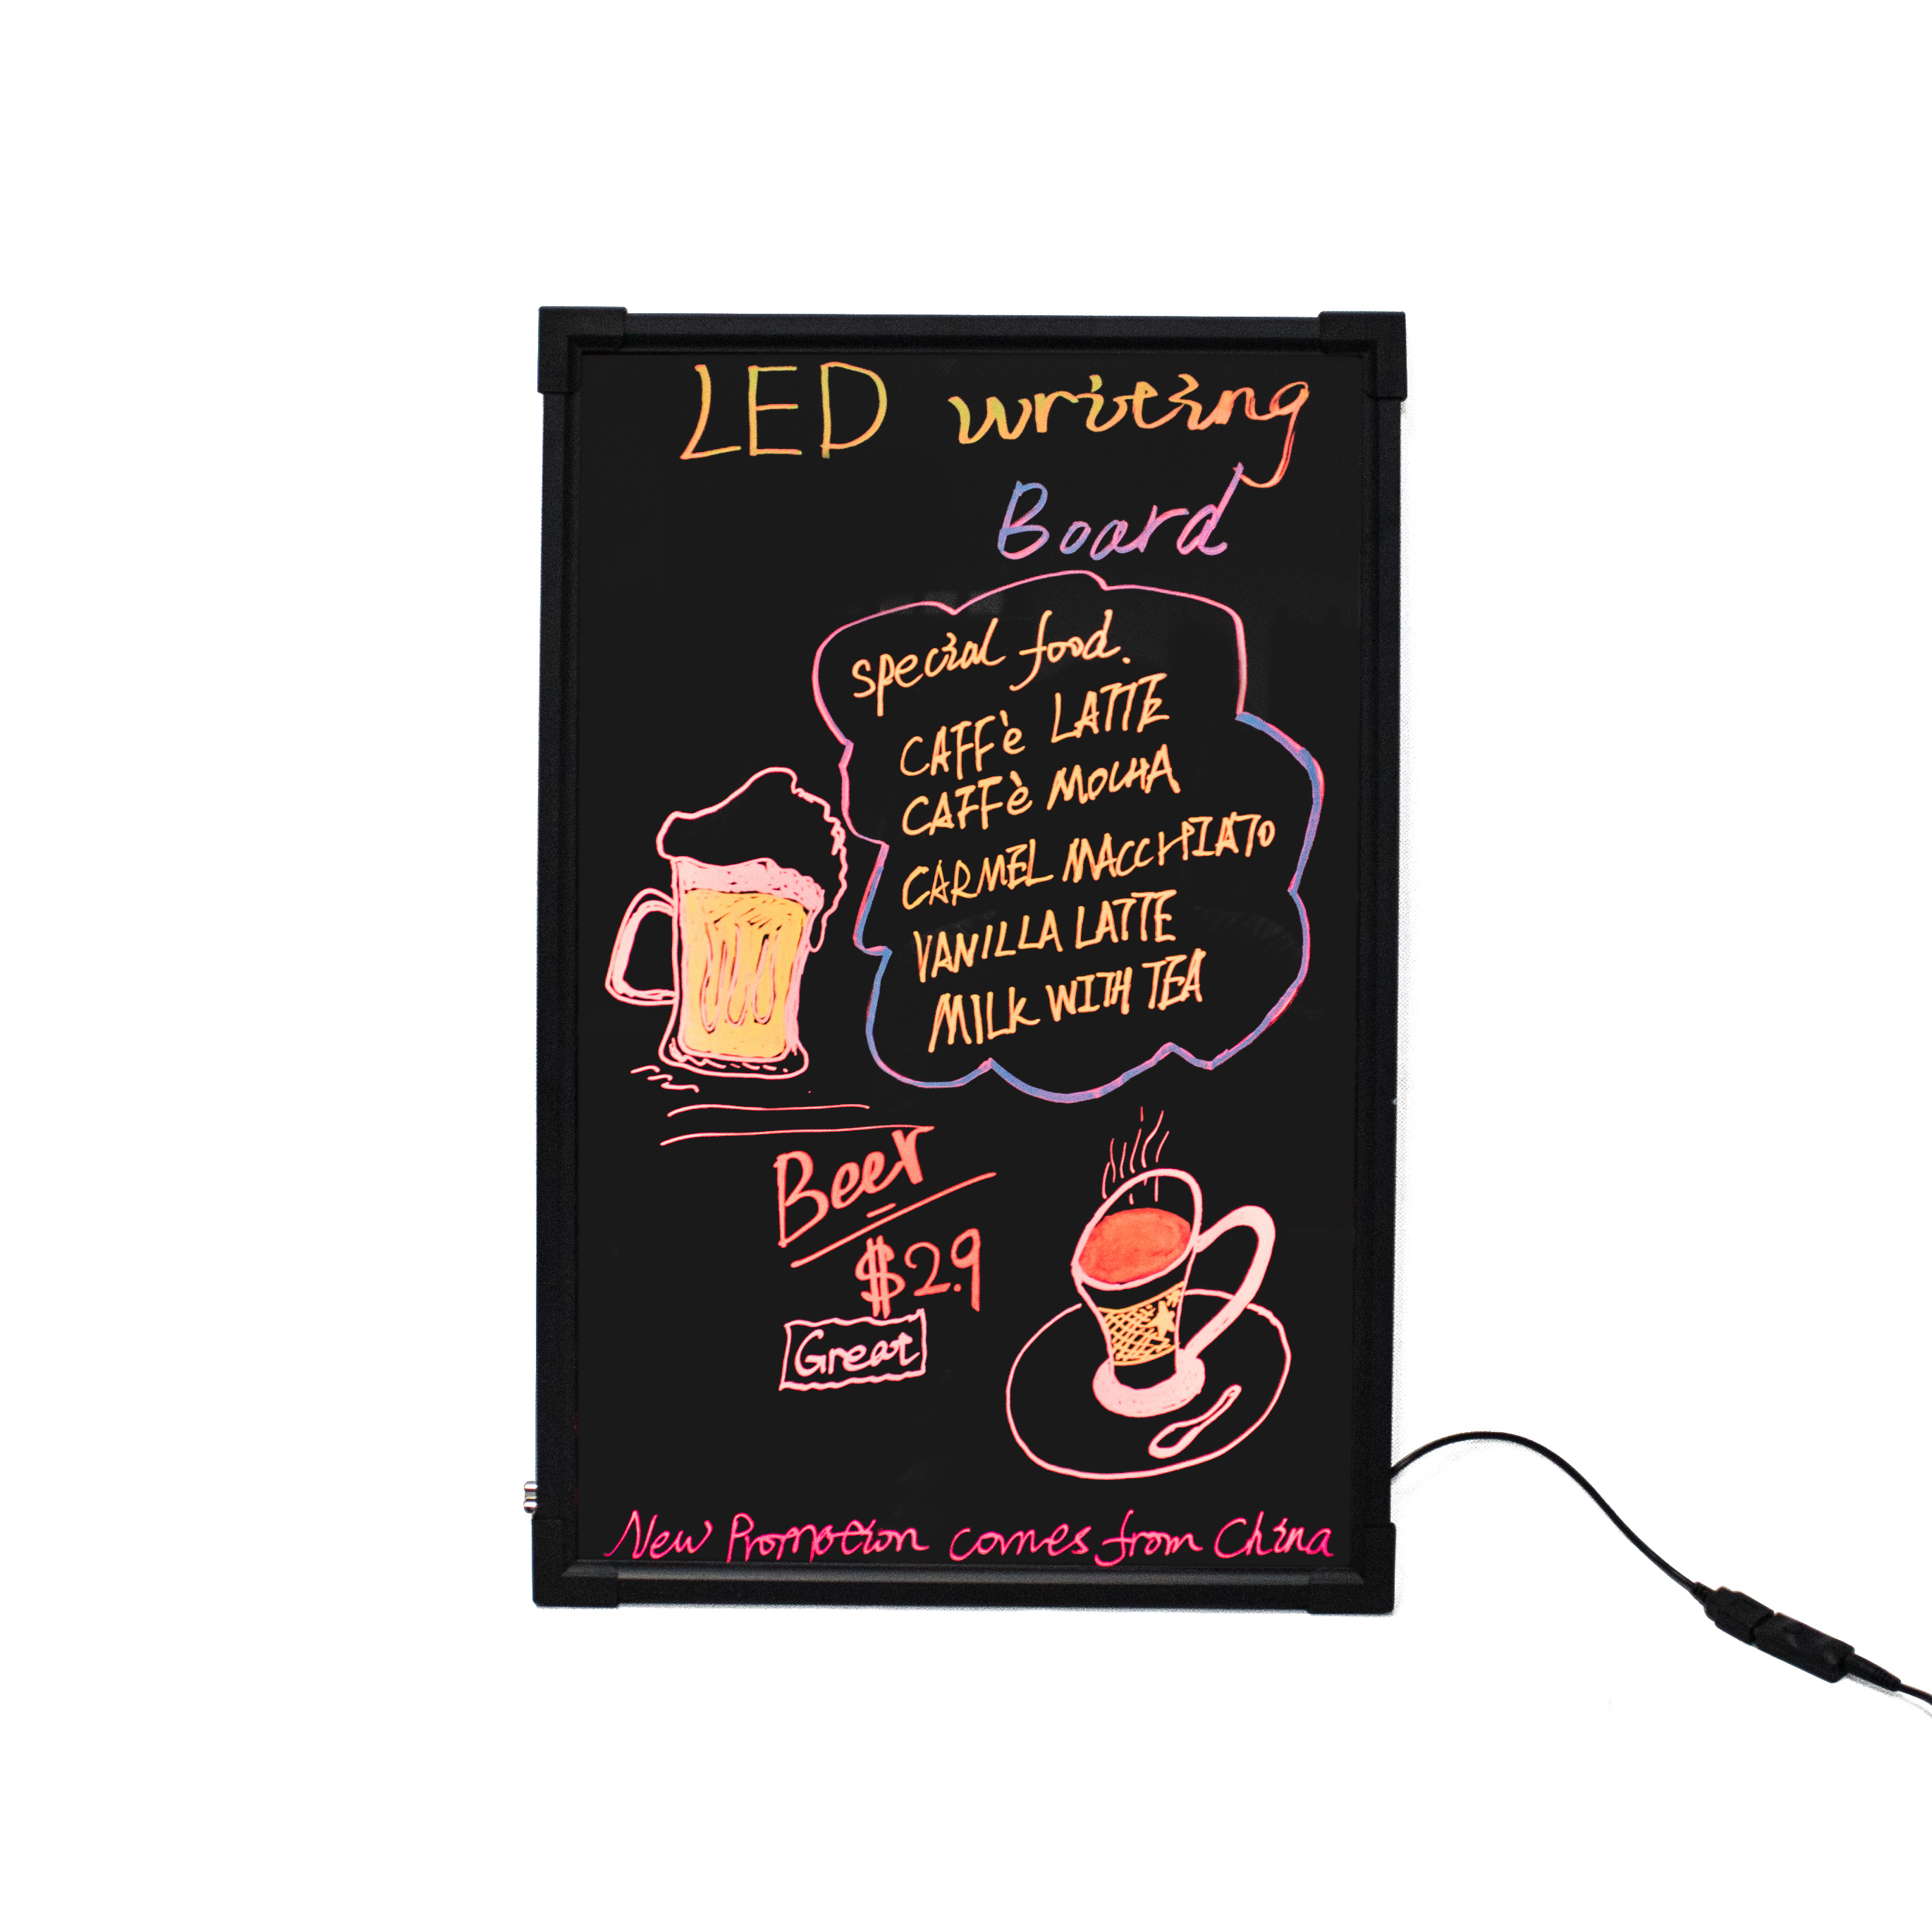 Merry Christmas Writing.Merry Christmas Led Writing Board Led Outdoor Advertising Board For Shop Cafe Restaurant Store Buy Merry Christmas Led Writing Board Led Writing